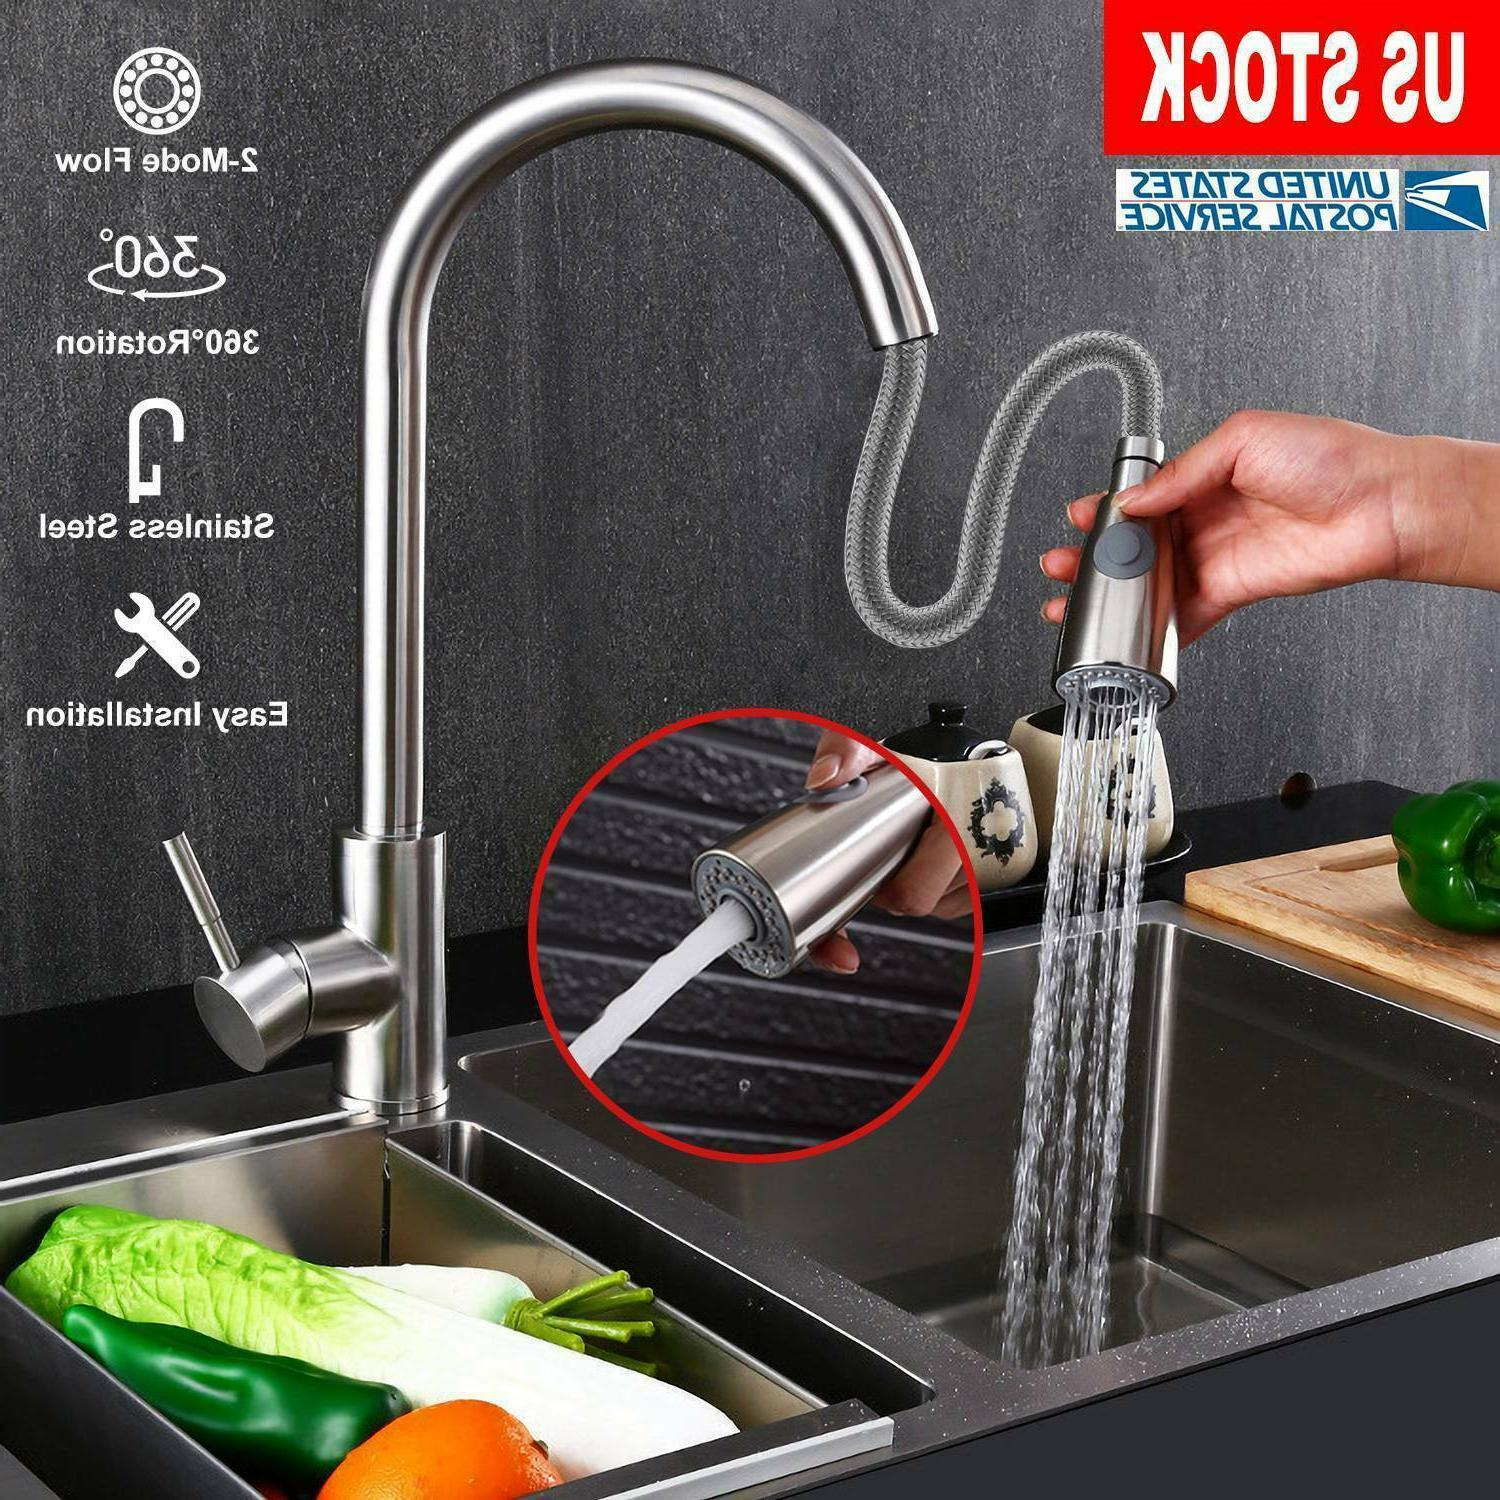 Brushed Kitchen Sink Pull Out Sprayer Hole Swivel Mixer New